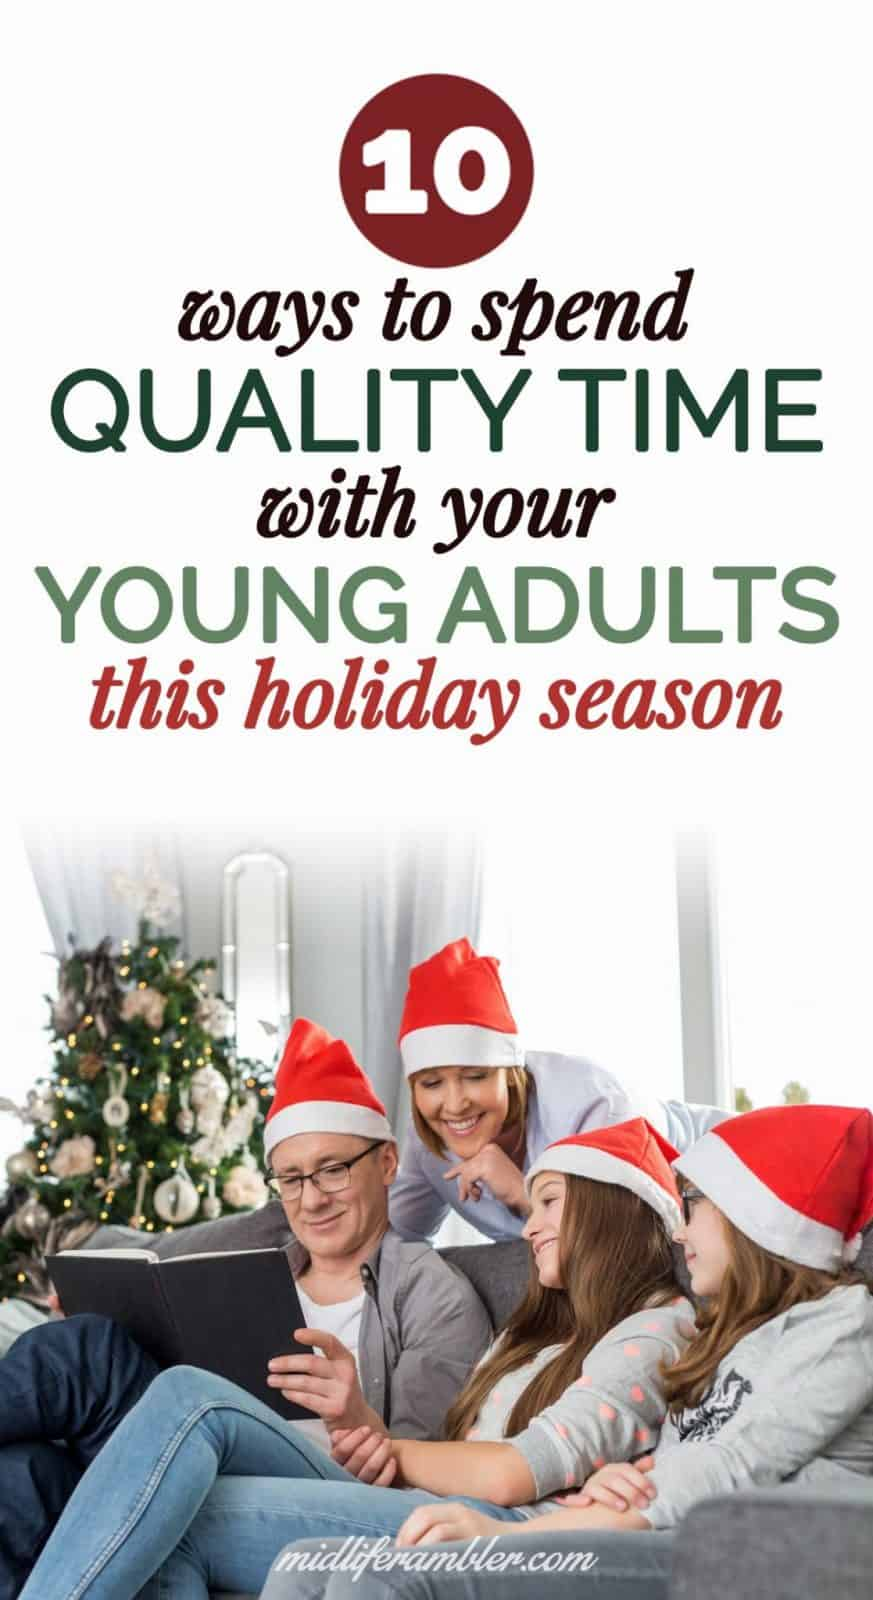 10 Ways to Spend Quality Time with Your College Student Home for the Holidays 20